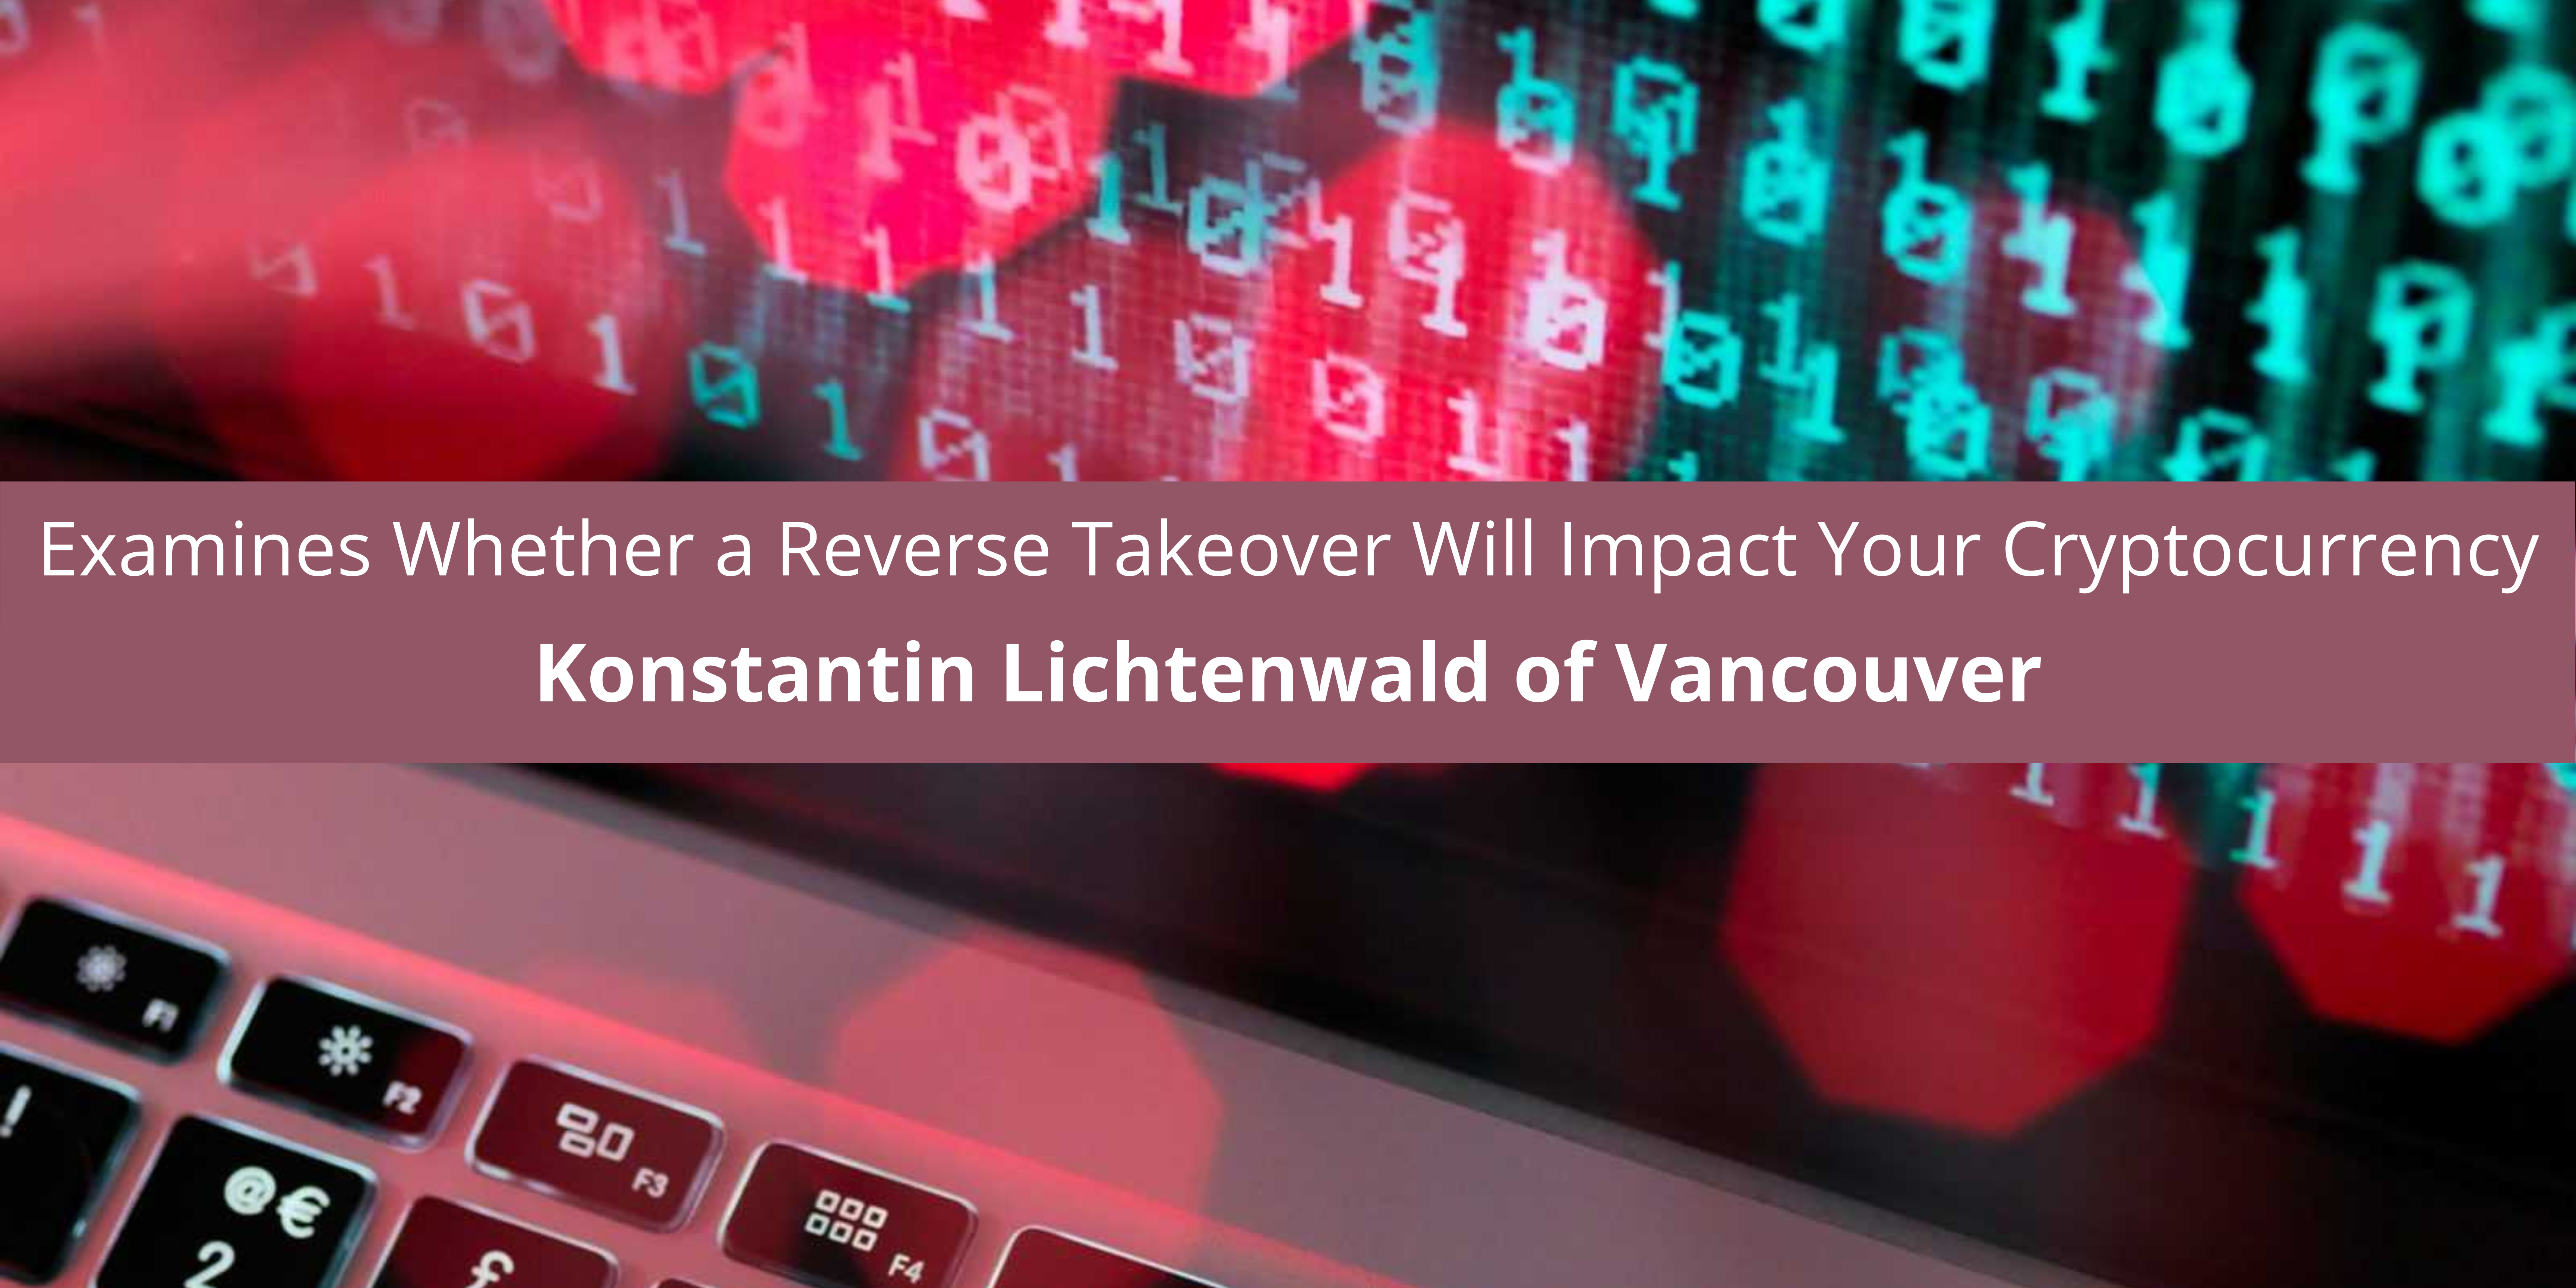 Konstantin Lichtenwald of Vancouver Examines Whether a Reverse Takeover Will Impact Your Cryptocurrency